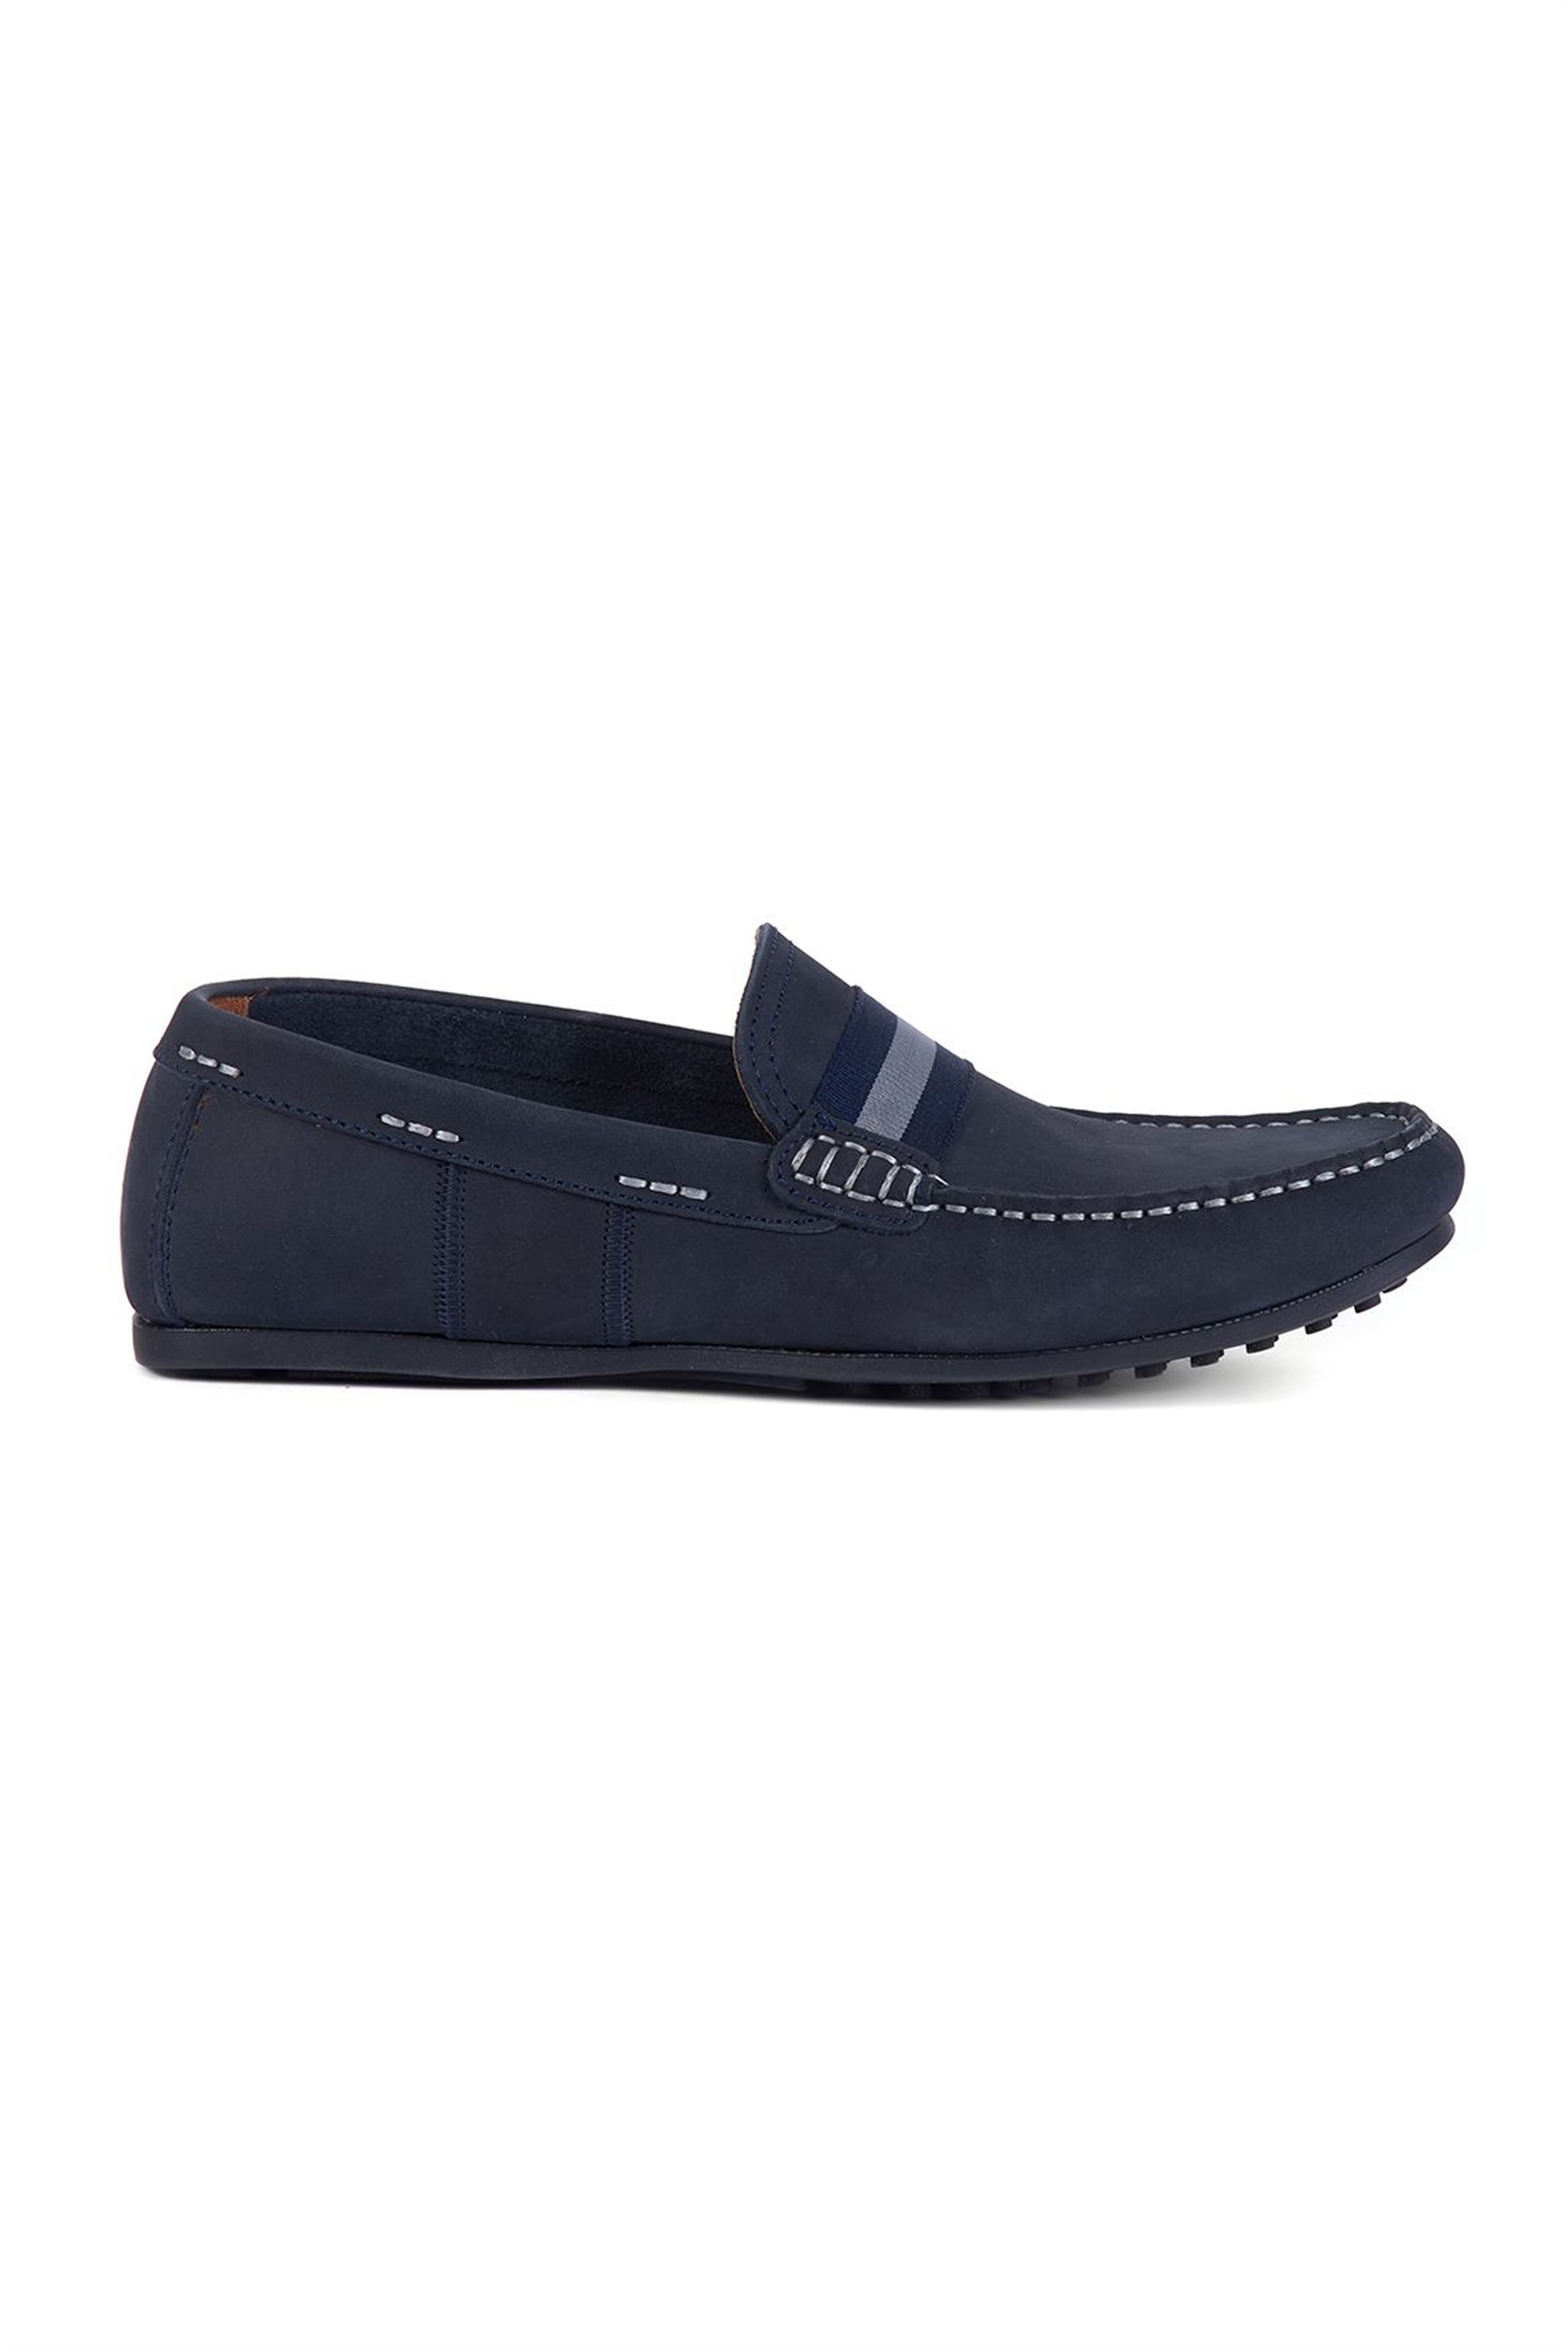 """Barbour ανδρικά suede loafers """"Mansell"""" - MFO0472 - Μπλε Σκο..."""